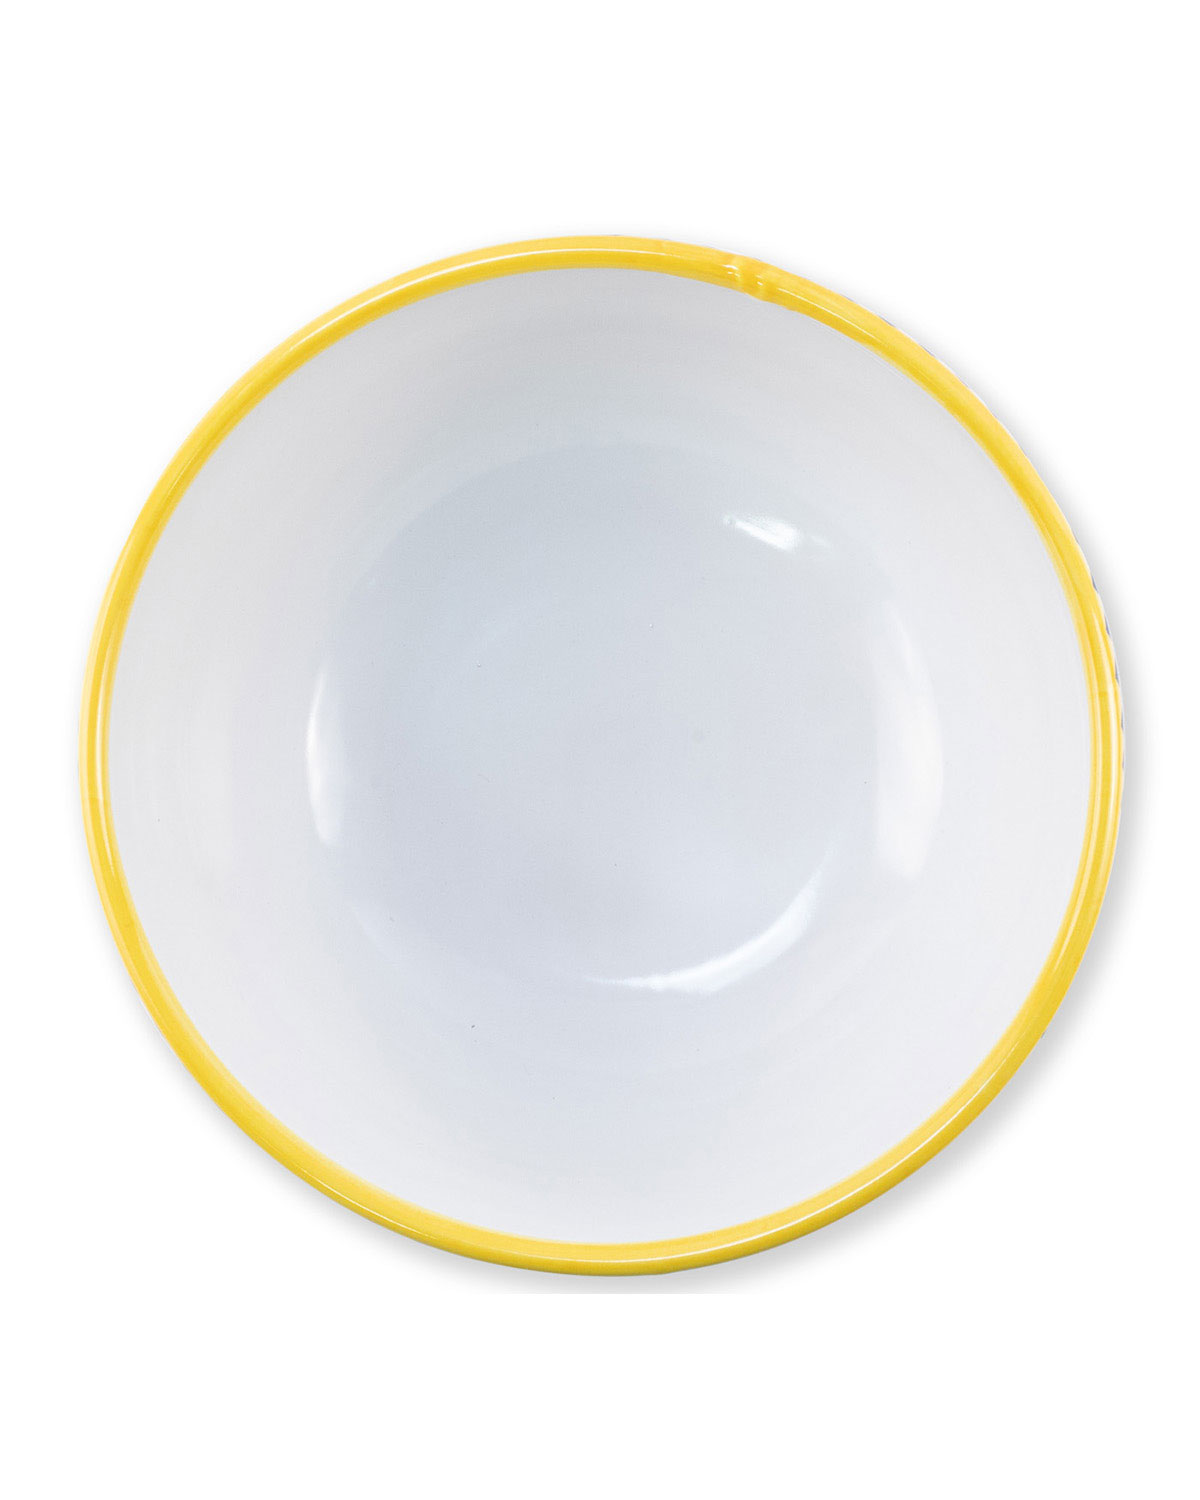 Vietricavallo Deep Serving Bowl